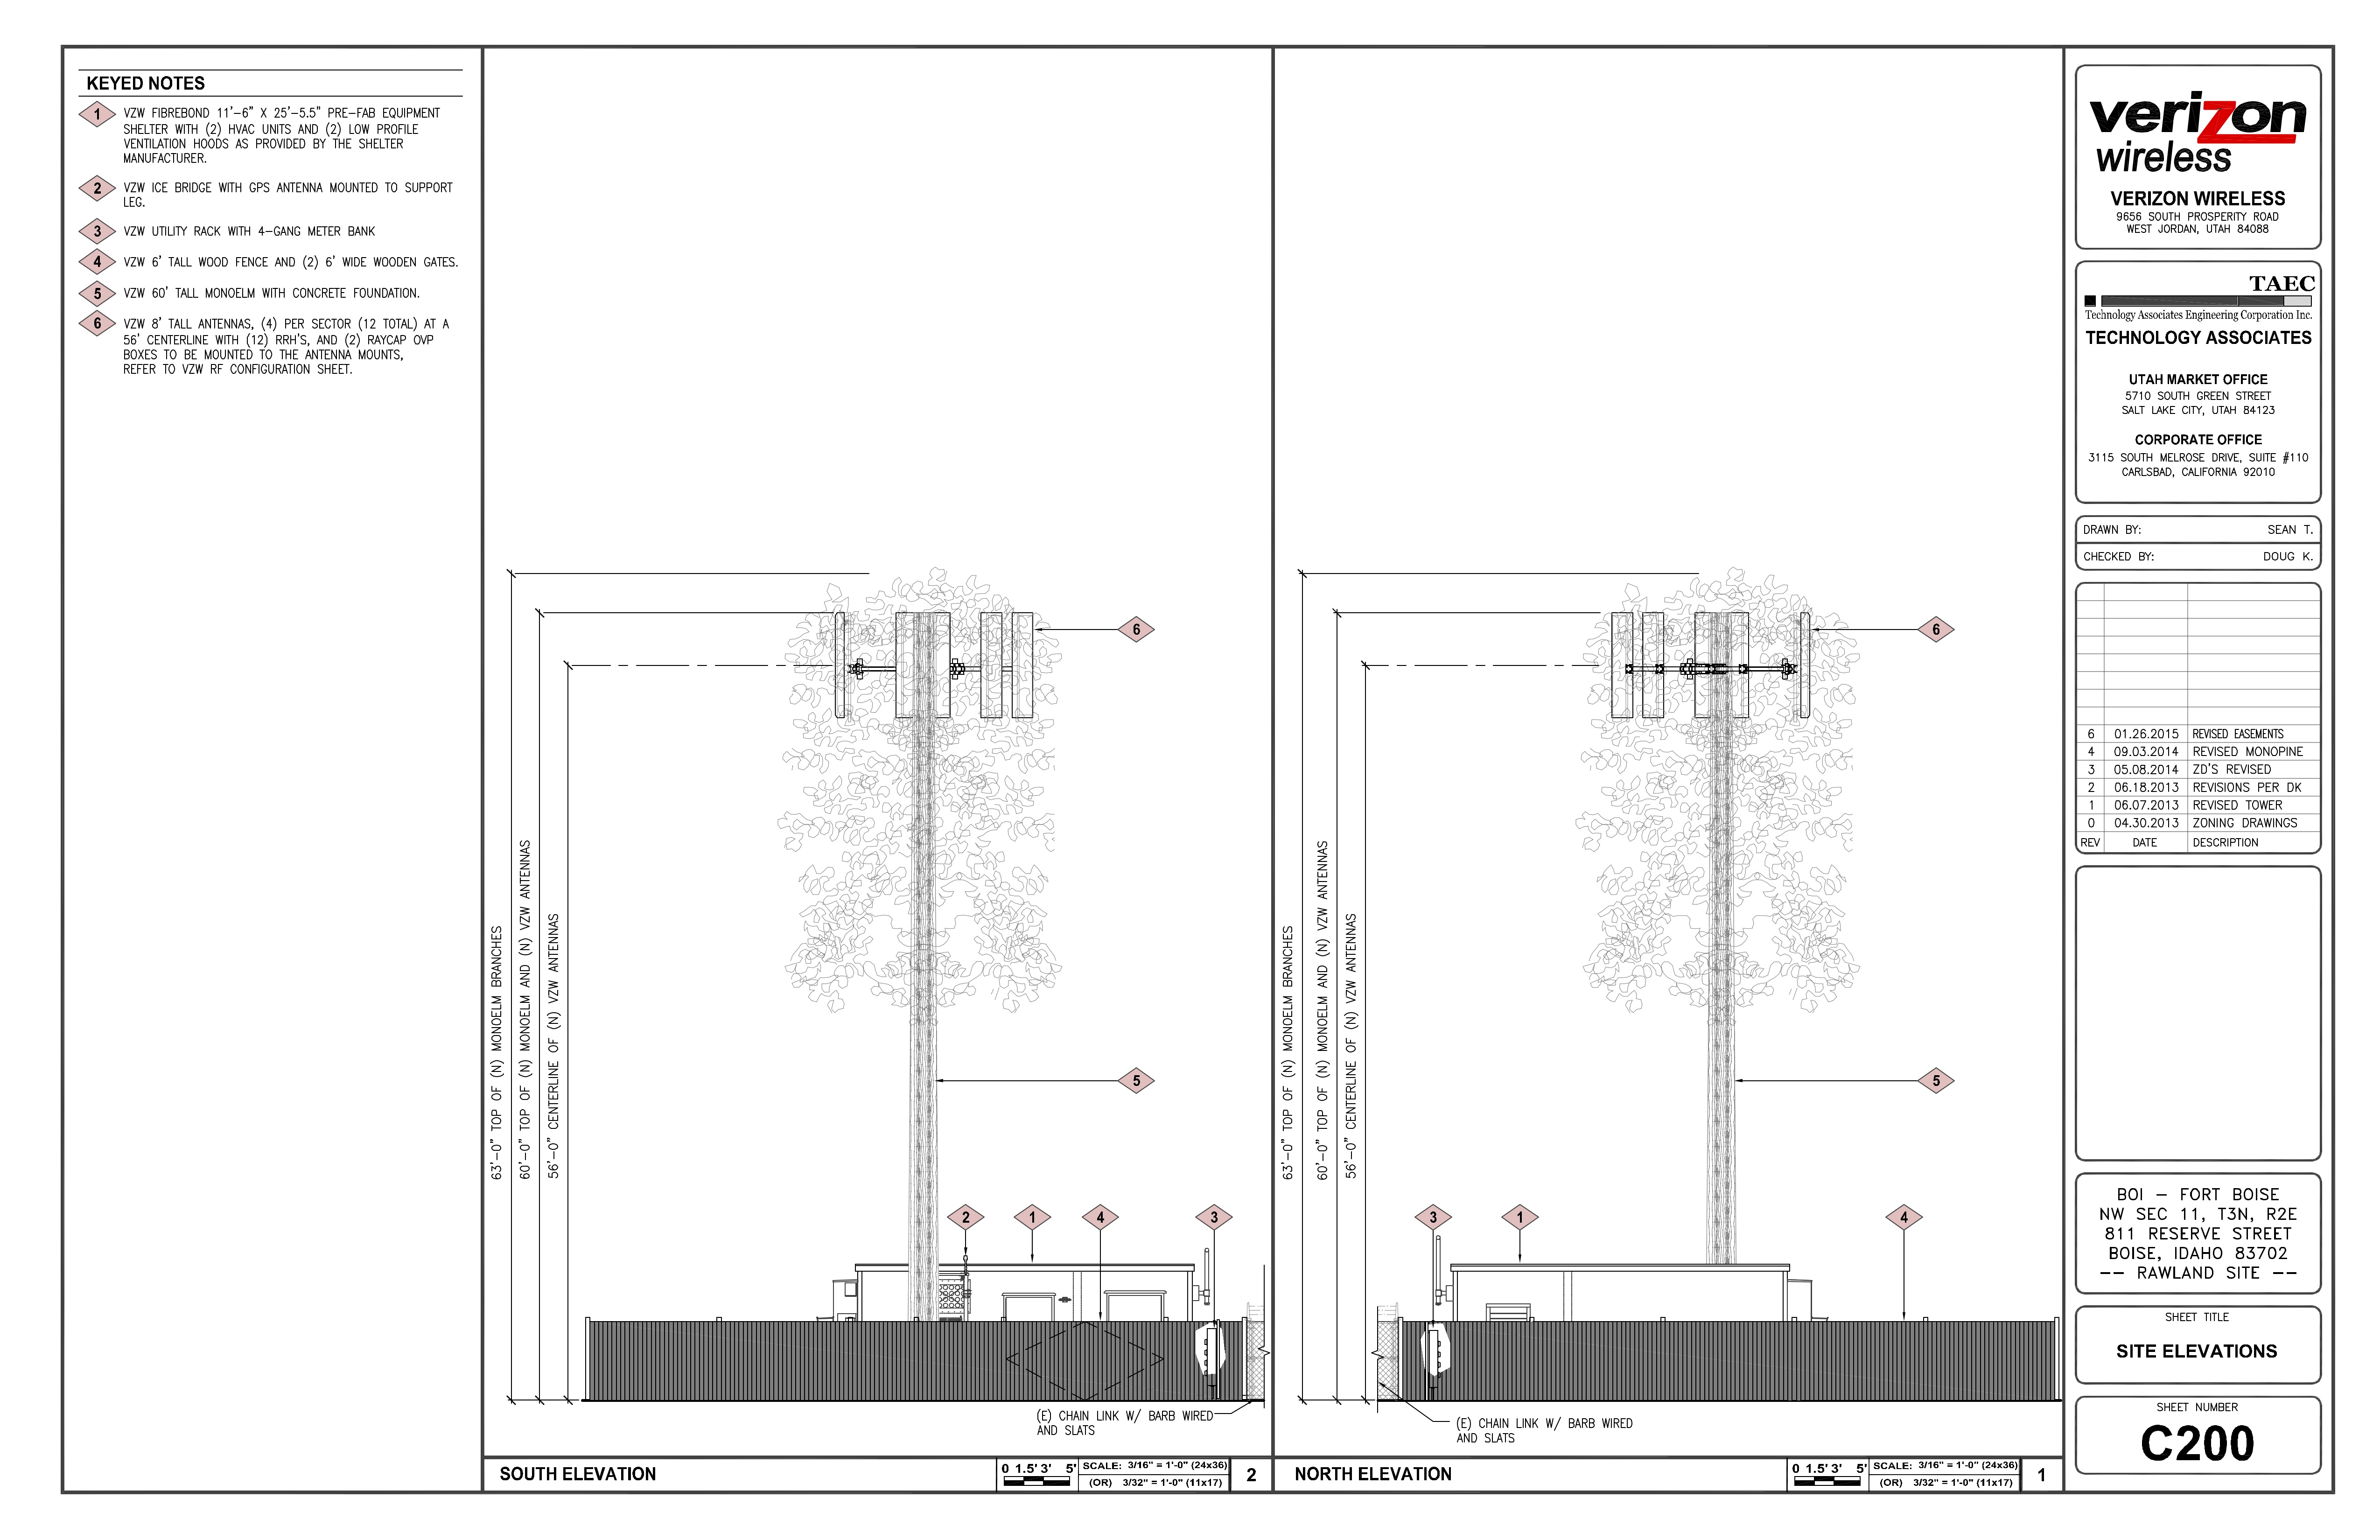 East Elevation Plan : Work begins on verizon cell tower reserve street armory